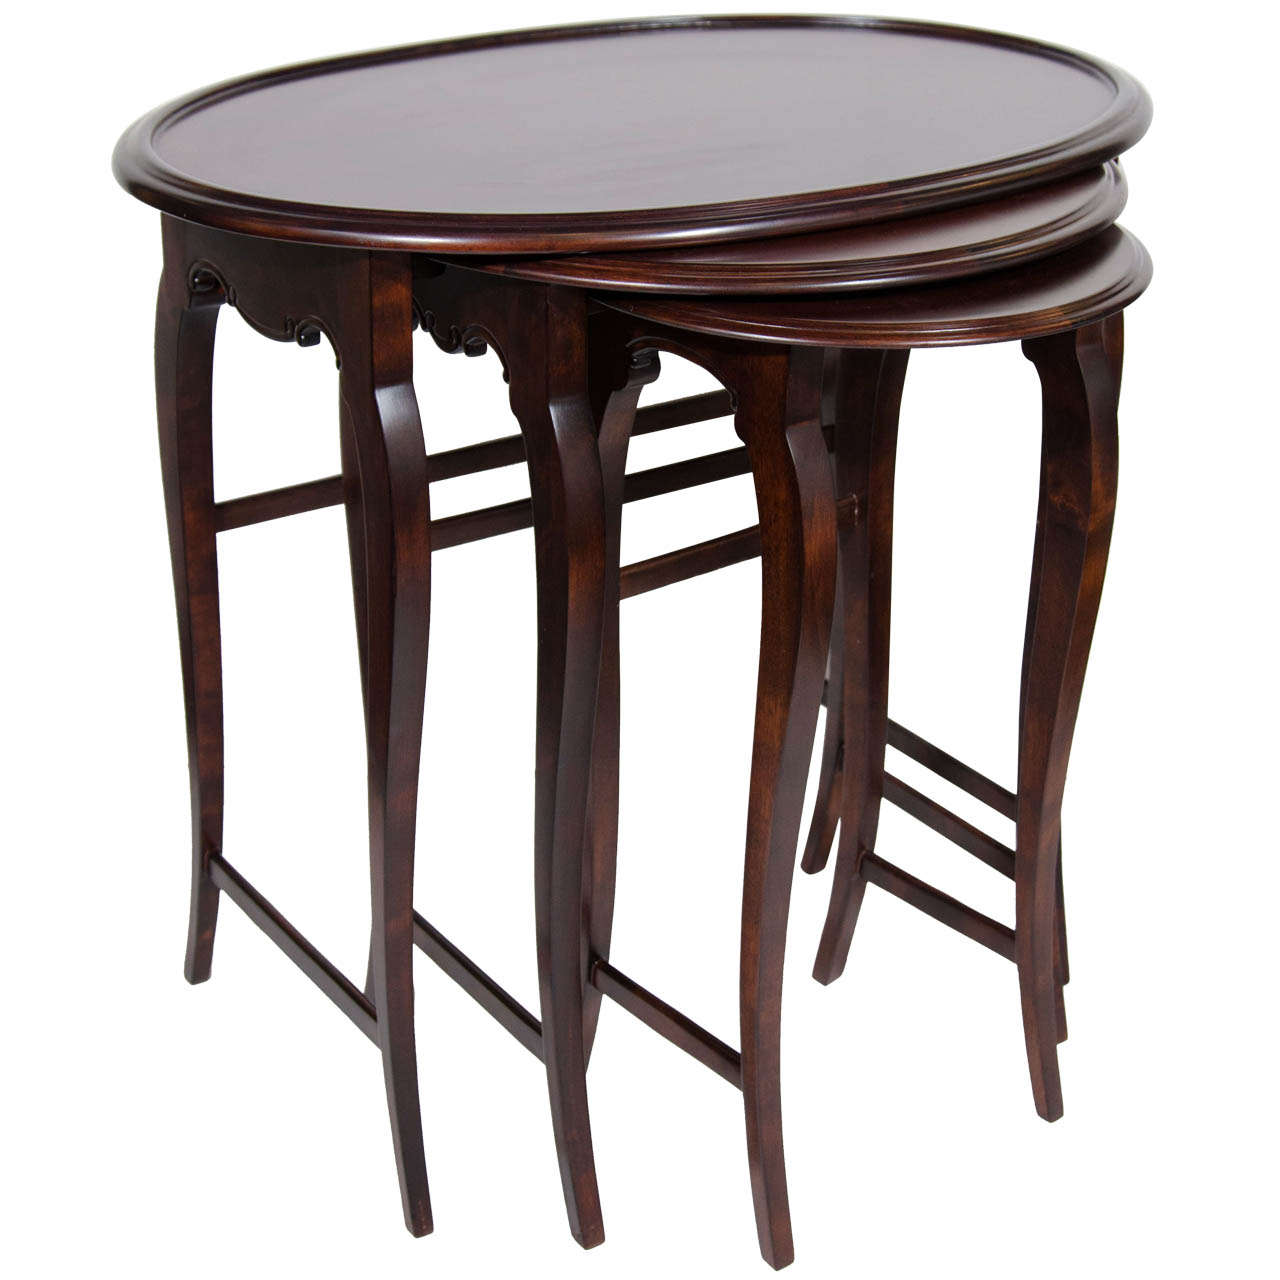 Picture of: Round Wood Nesting Tables